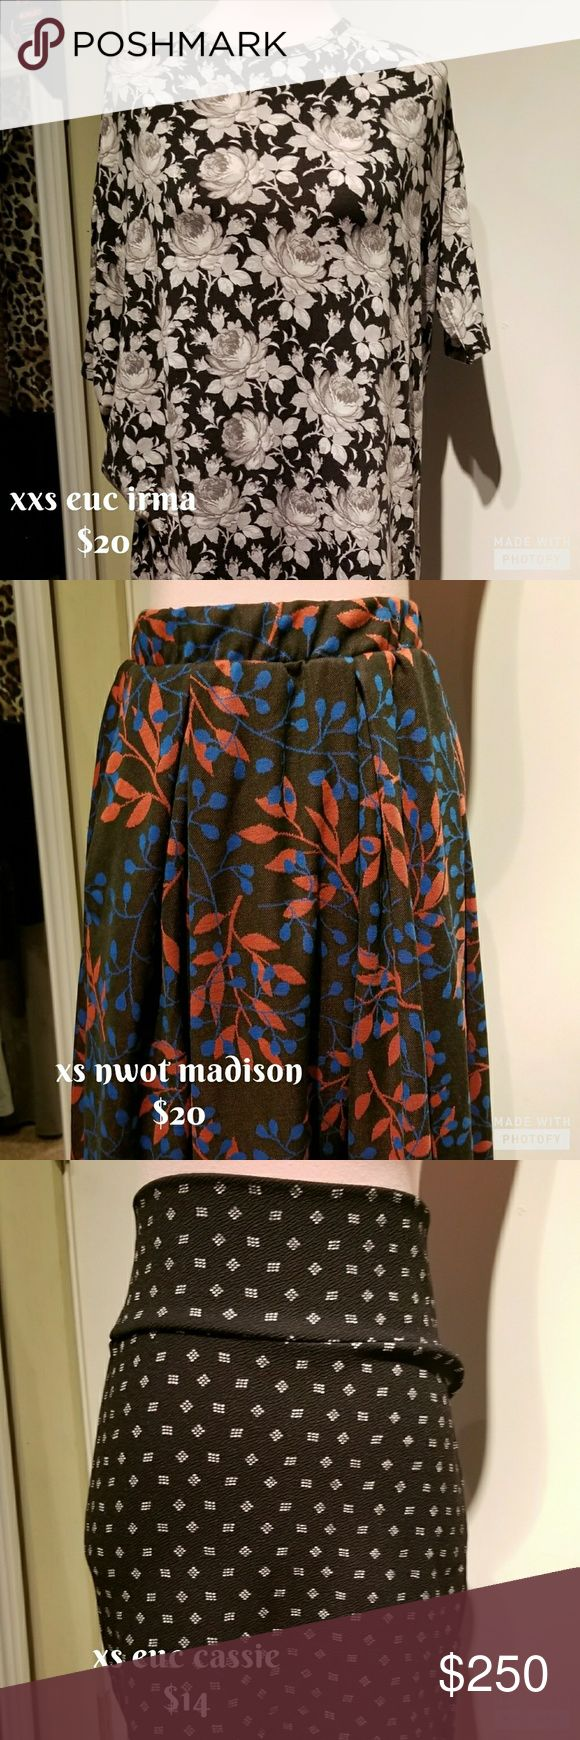 Lularoe consultant destash Gently used Llr items for sale! Price listed on picture! Other